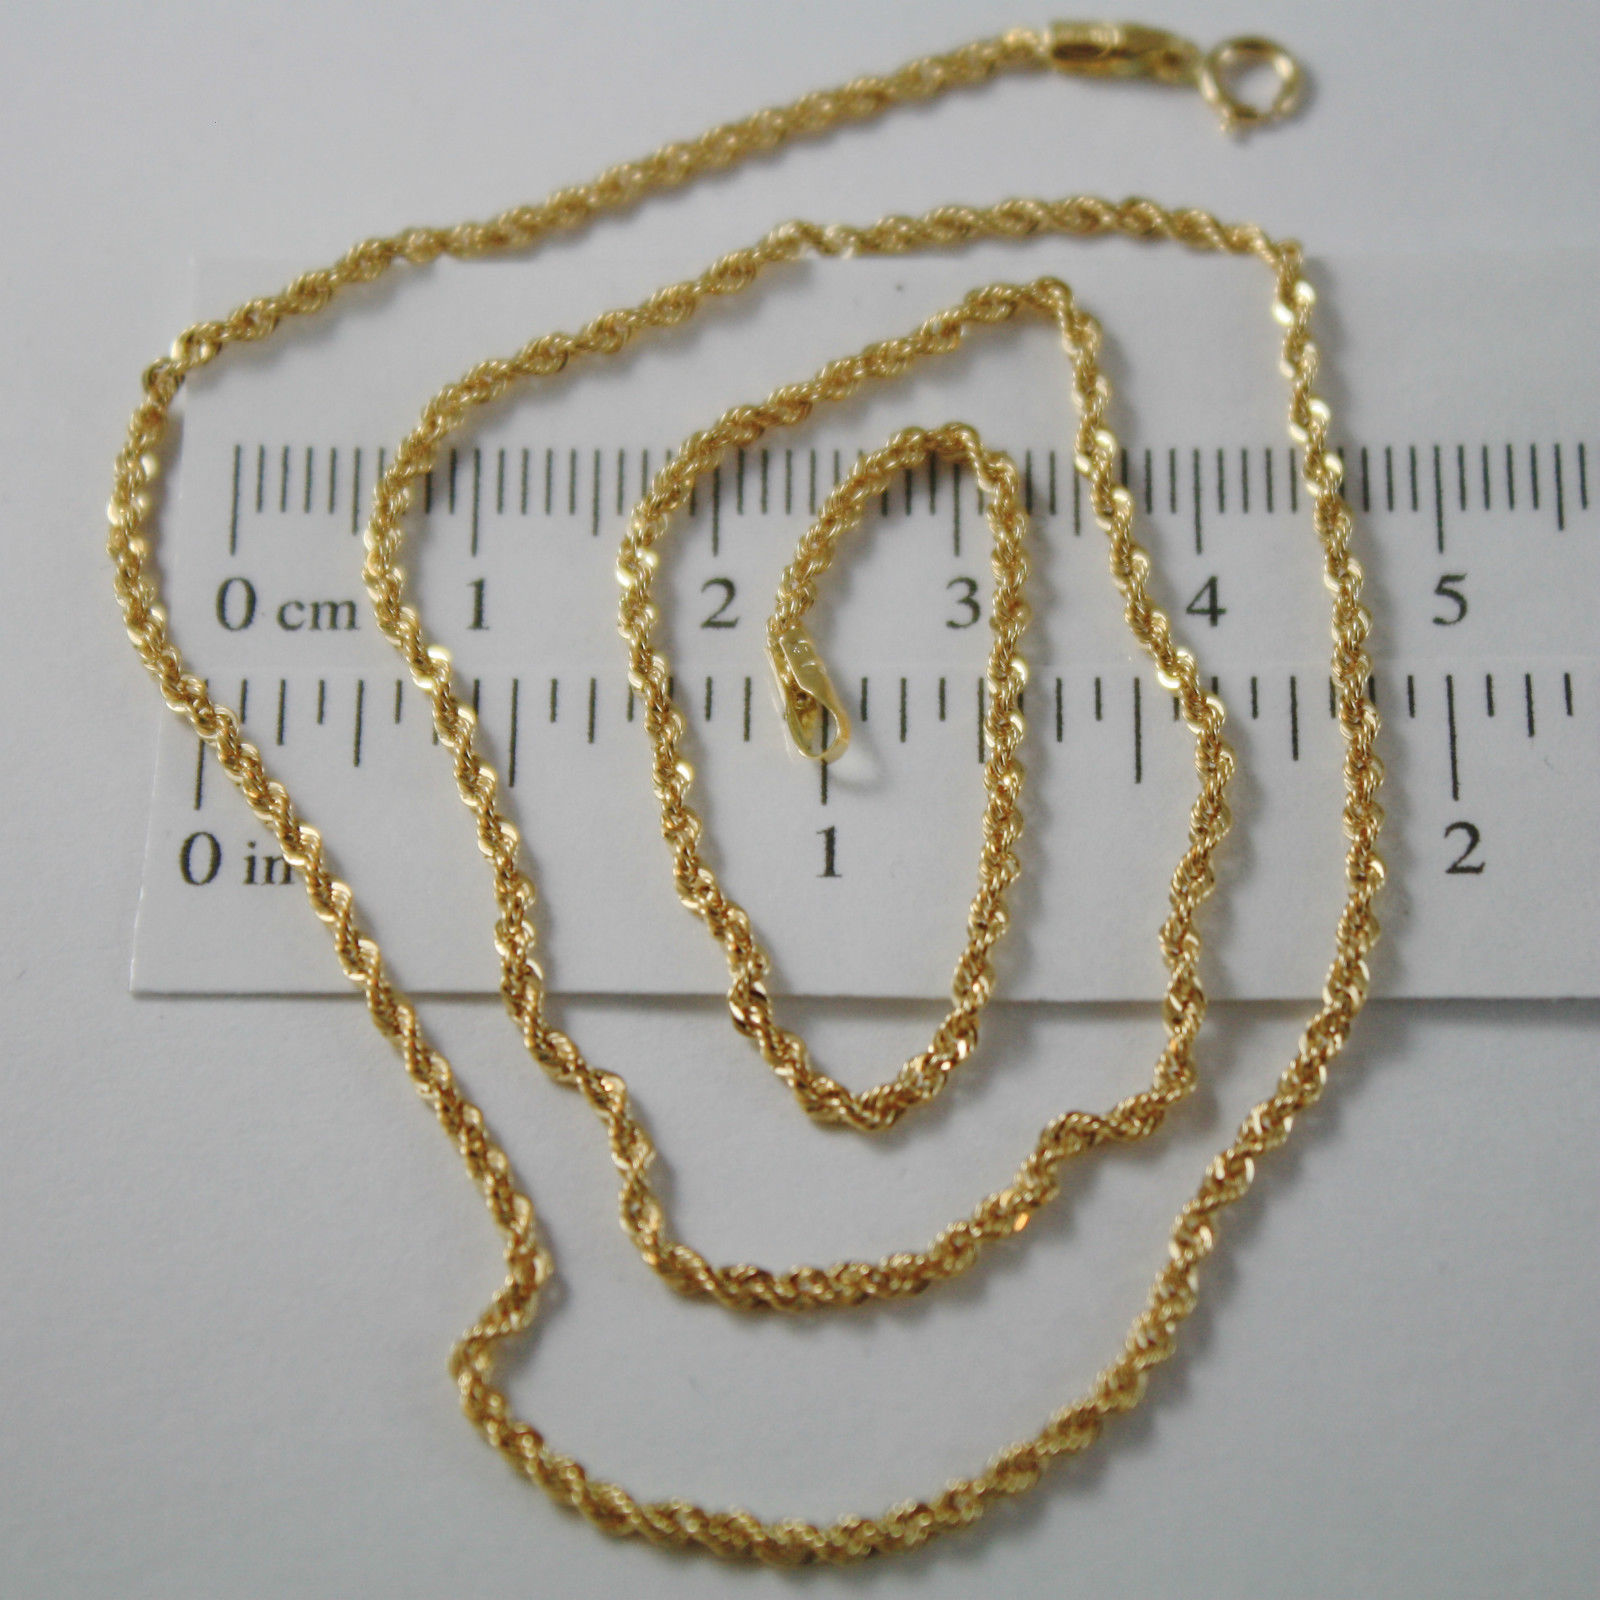 18K YELLOW GOLD CHAIN NECKLACE, BRAID ROPE 24 INCHES, 60 CM LONG, MADE IN ITALY